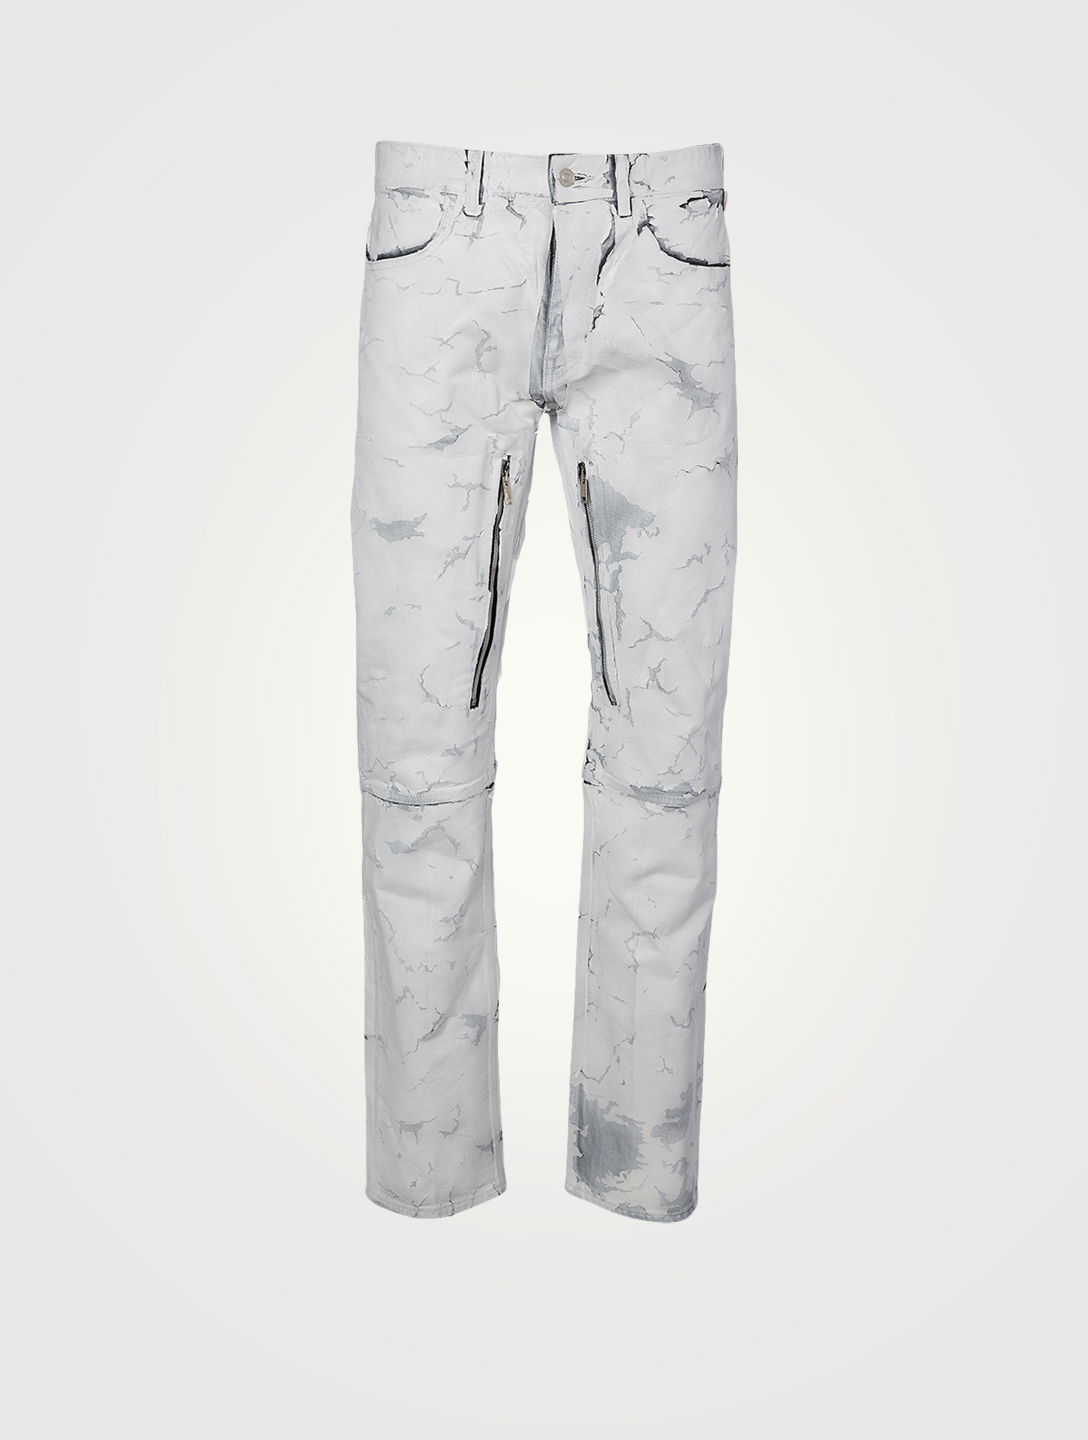 GIVENCHY Straight-Fit Jeans With Zippers Men's White